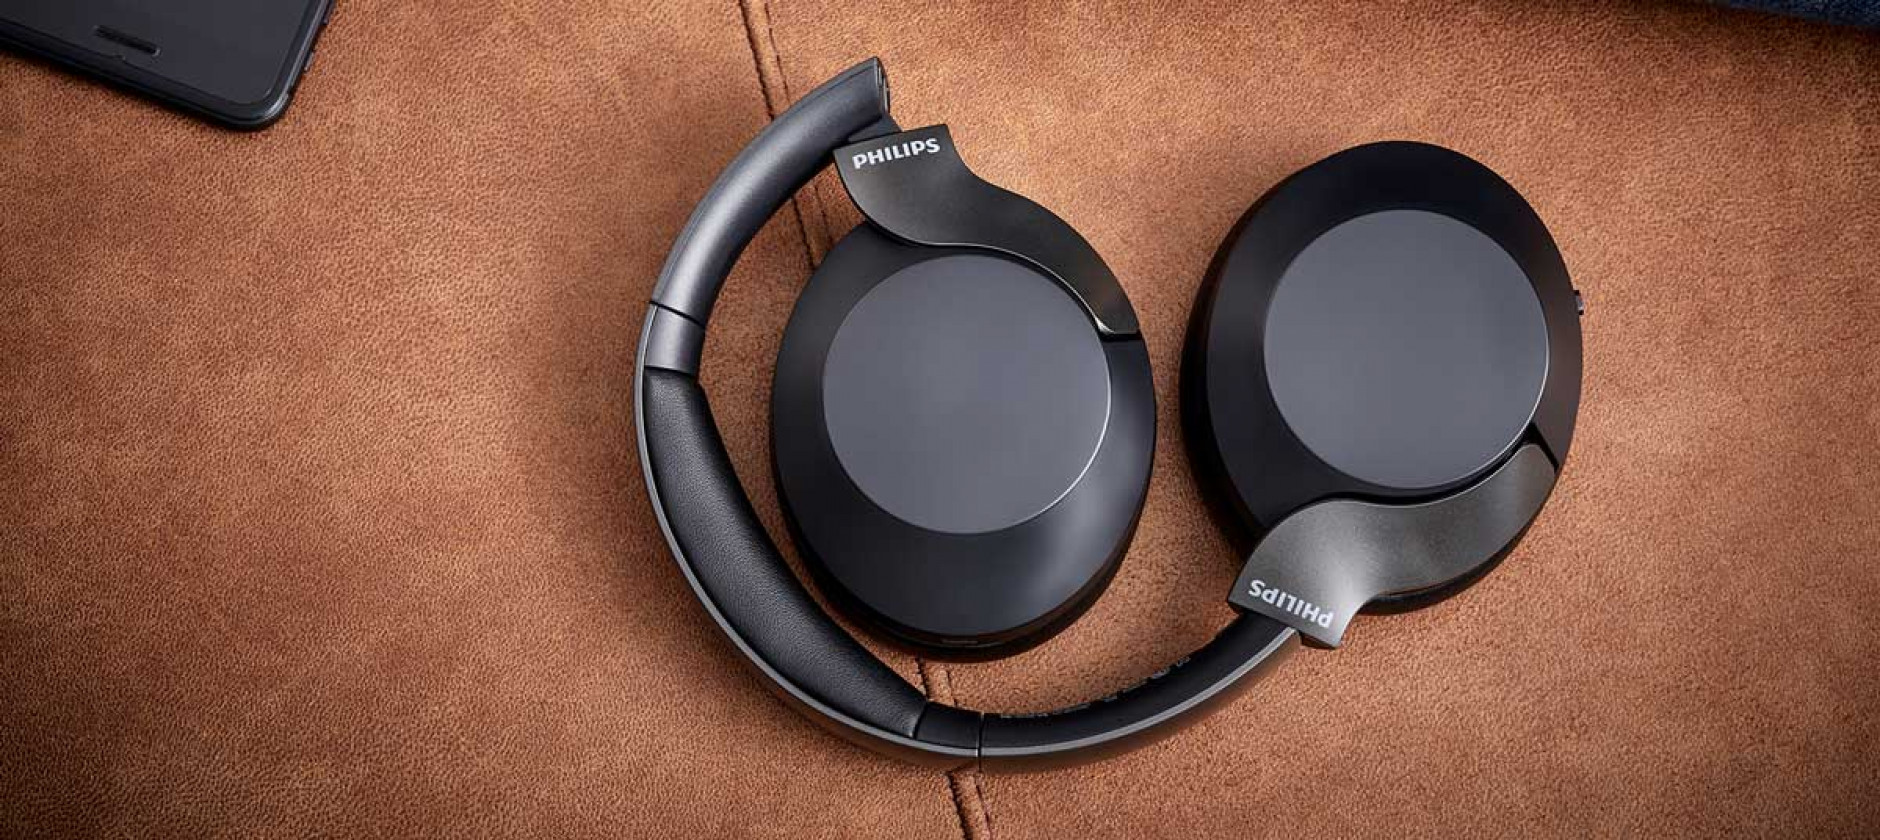 Le cuffie Philips PH805 cancellano il rumore e promettono audio di qualità senza fili